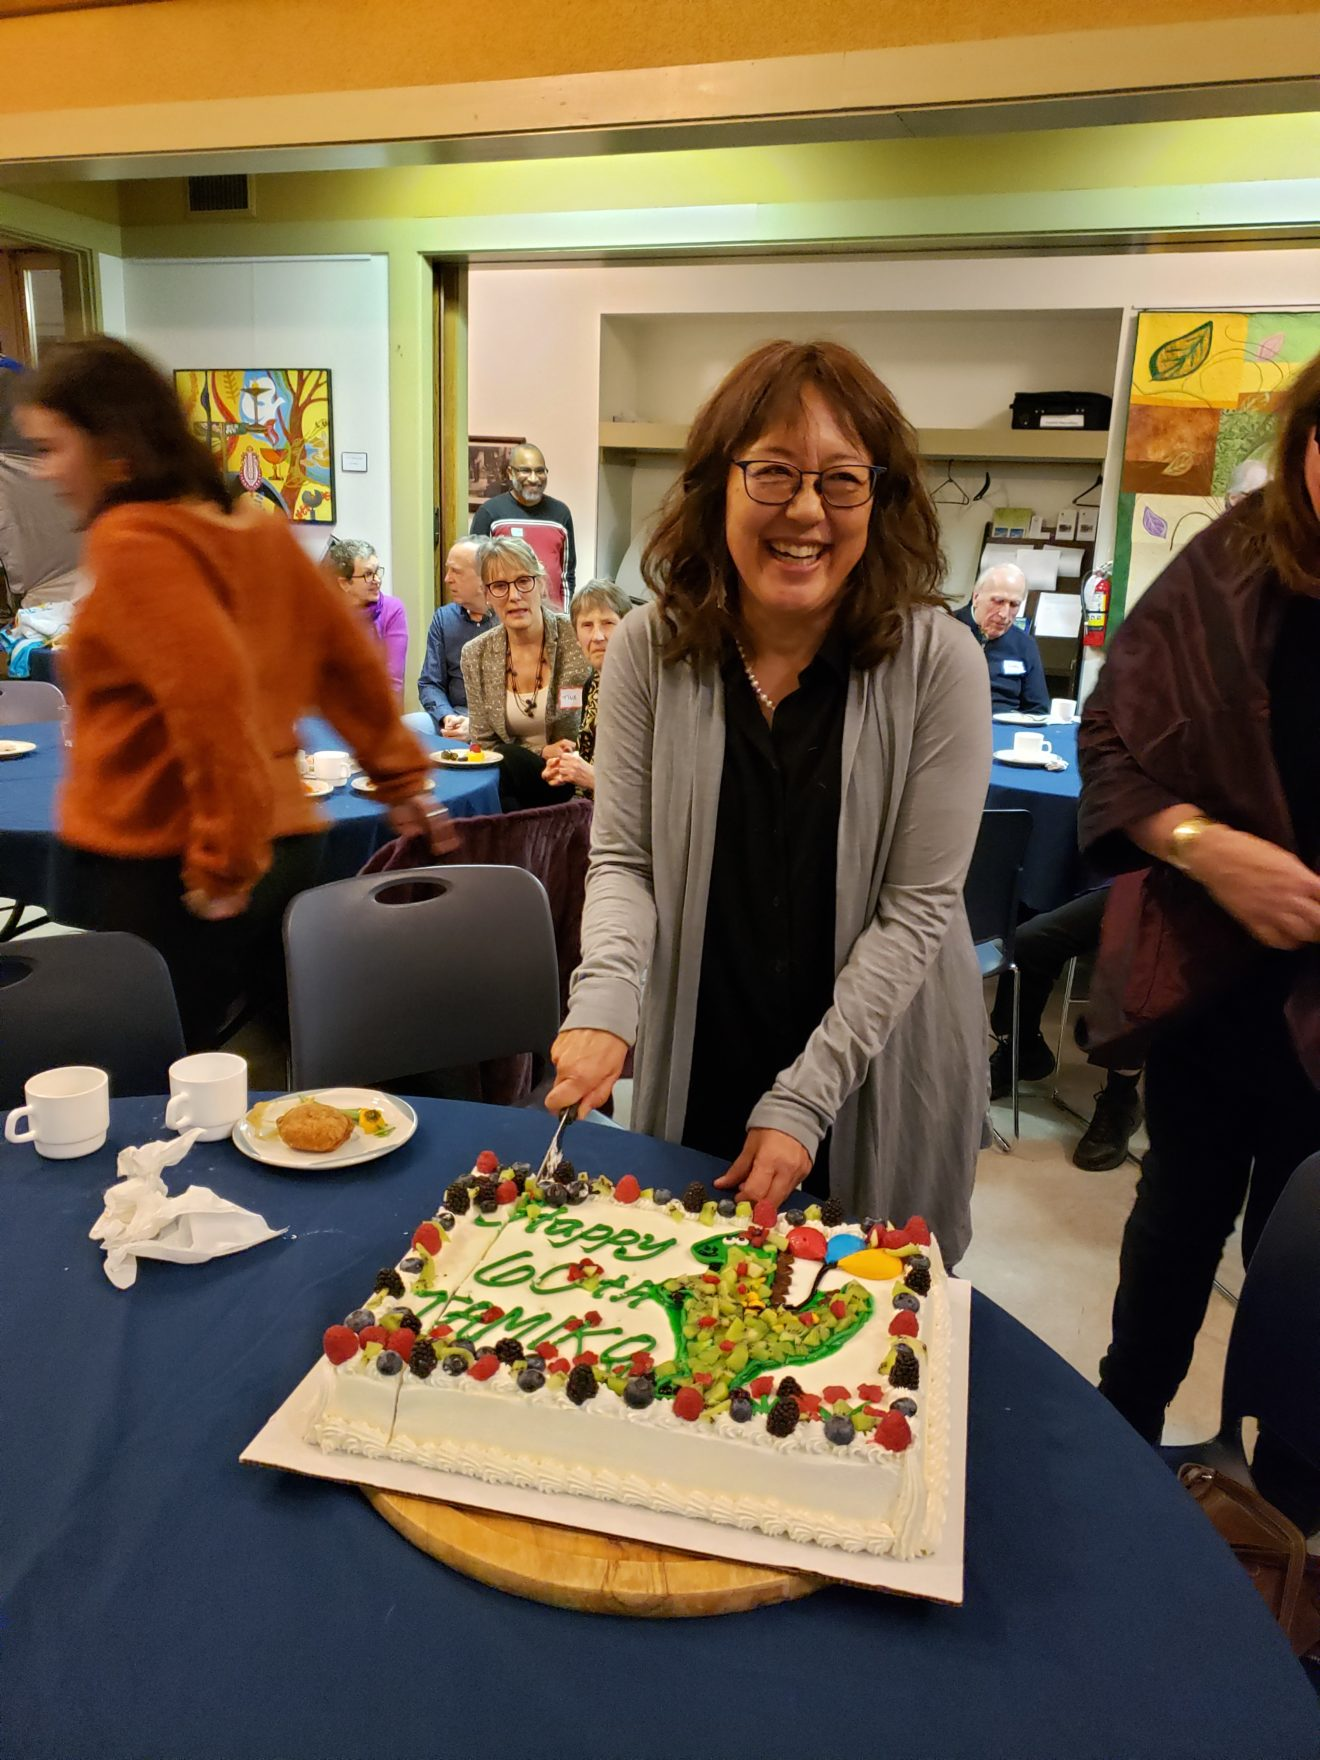 Birthday Party Fundraiser a Rousing Success!